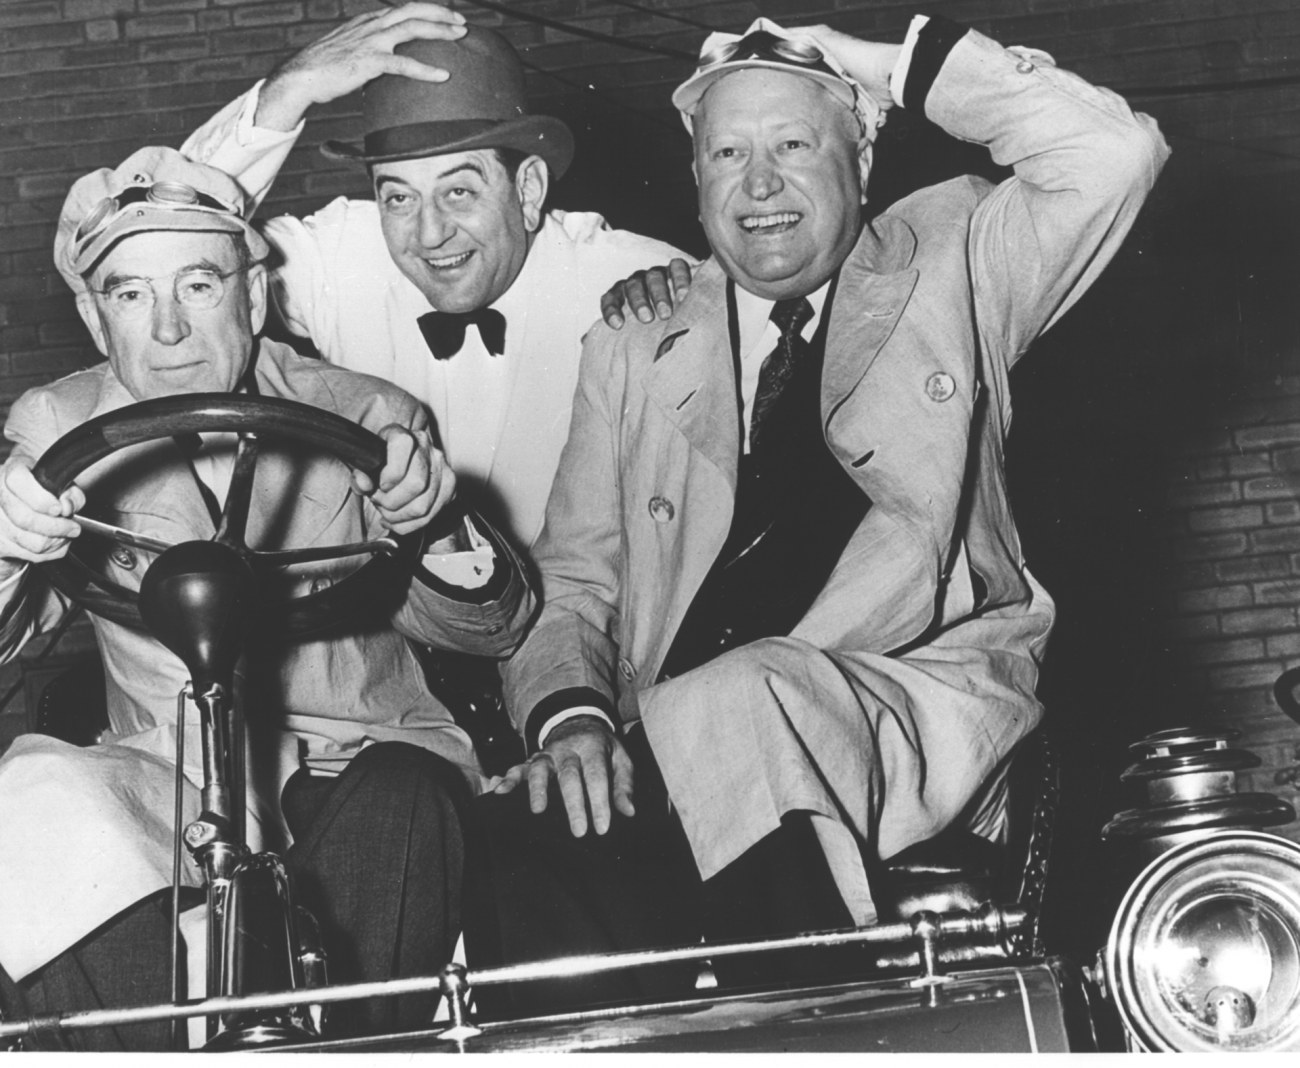 three men in a car